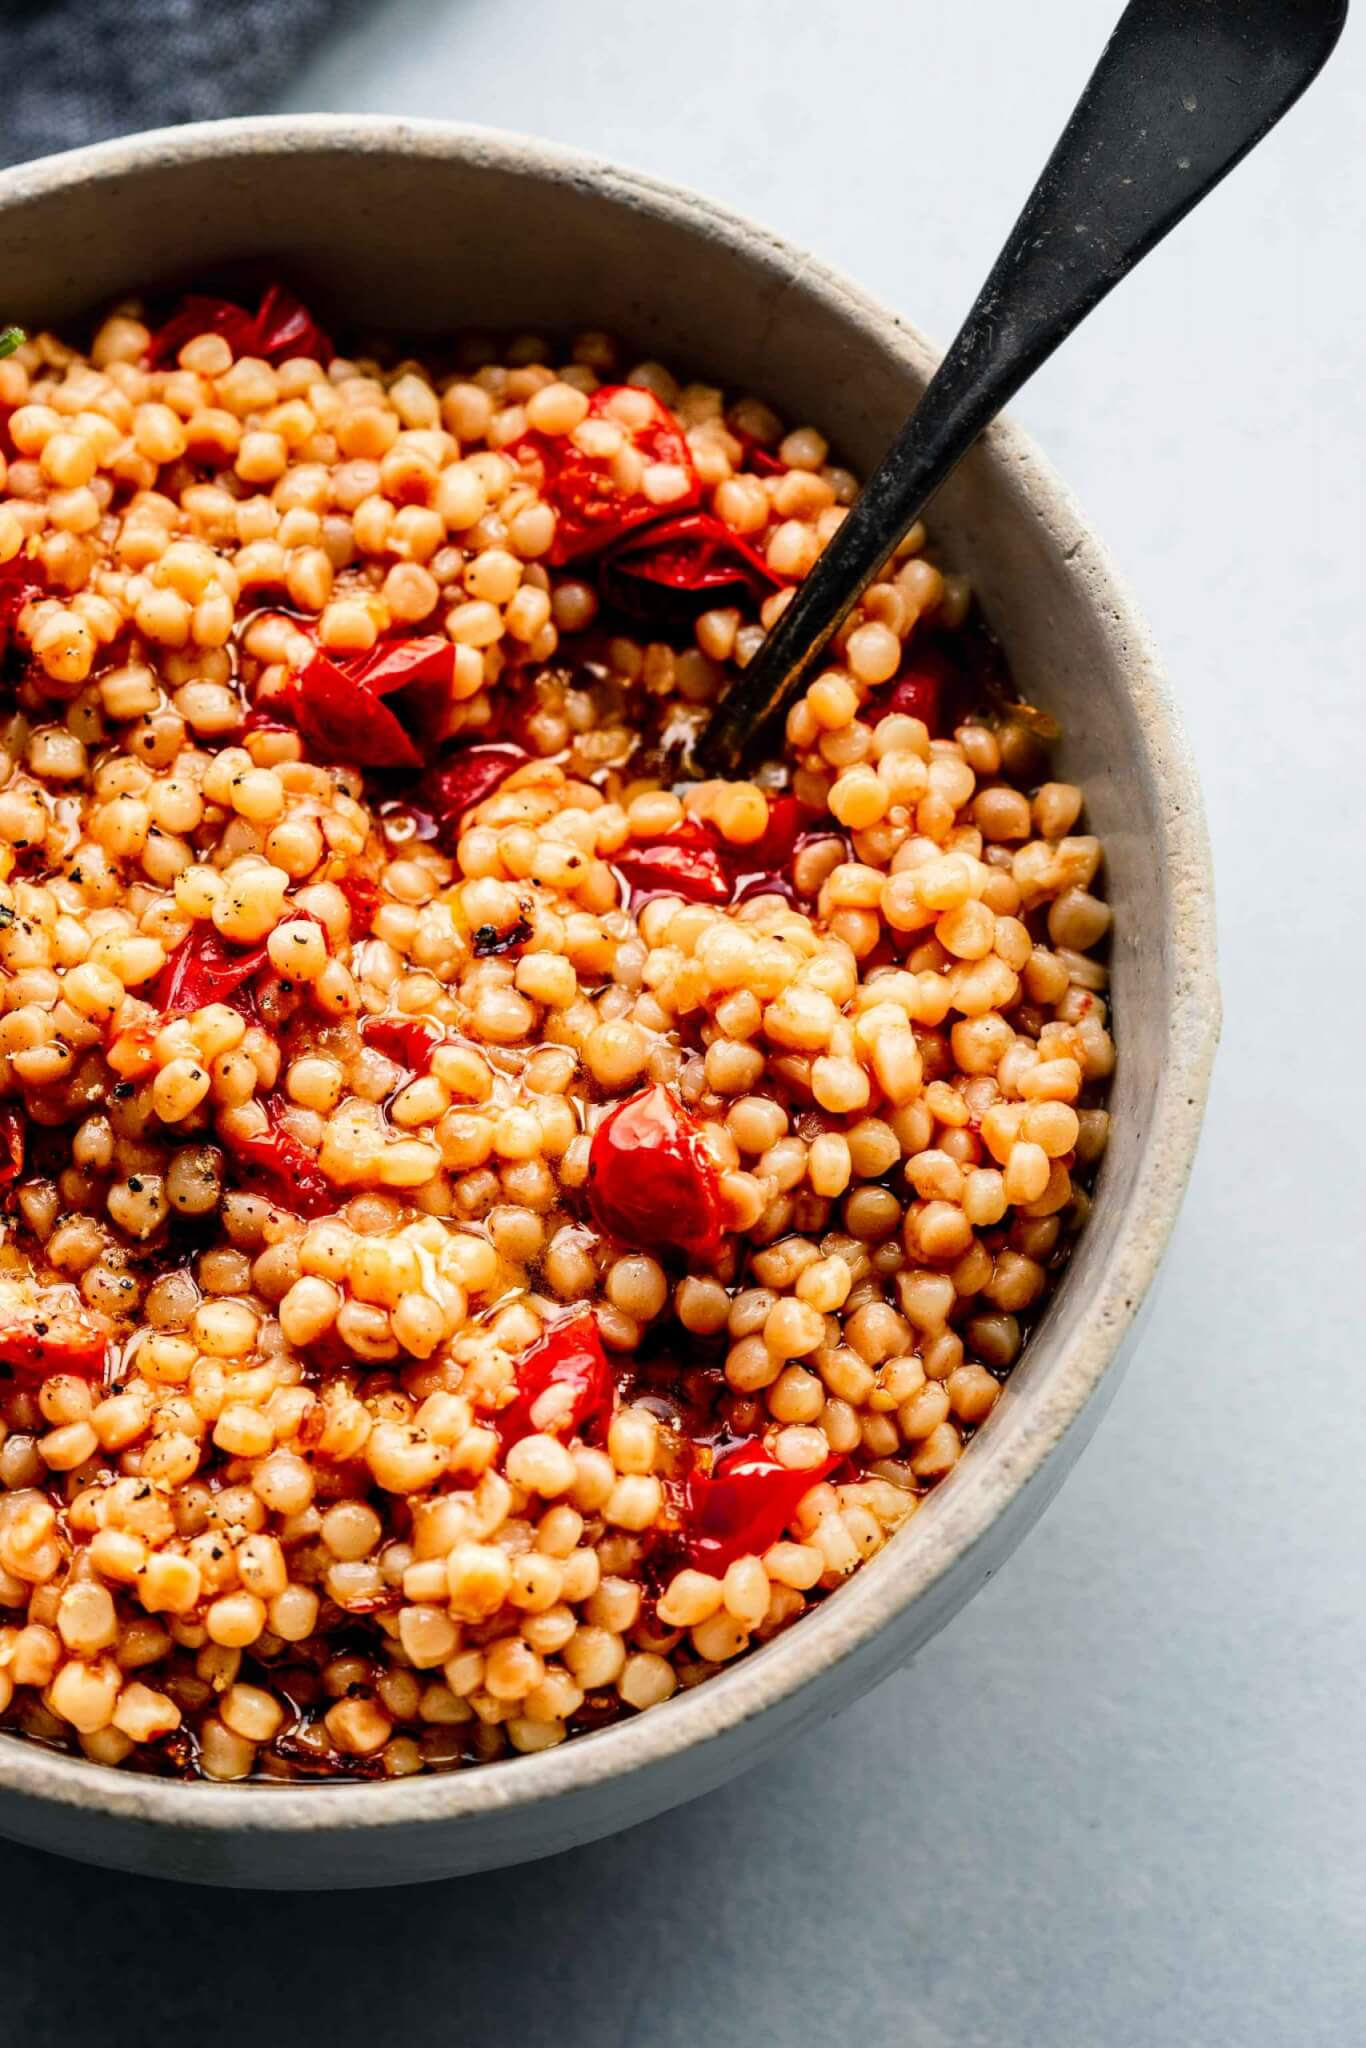 Side view of bowl of cooked tomato couscous with spoon.